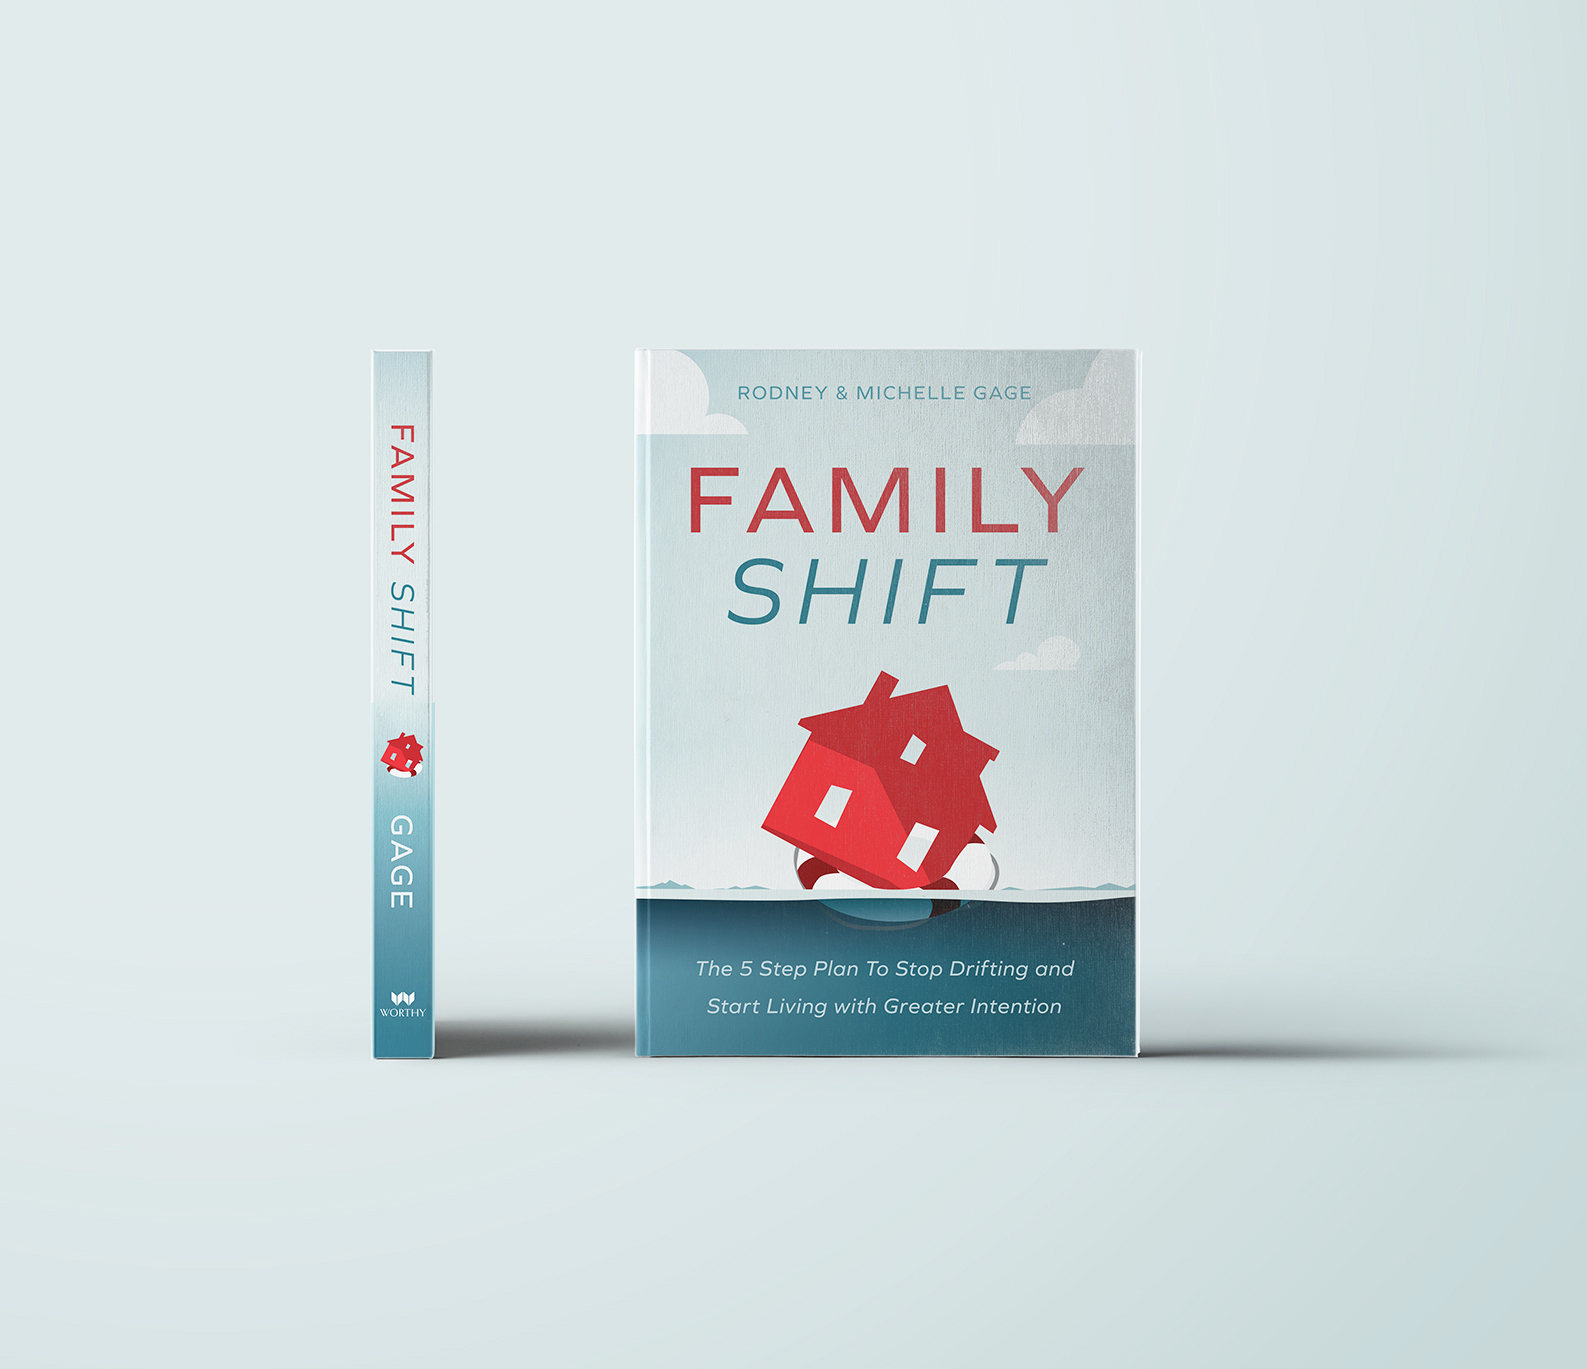 FAMILY SHIFT | The 5 step proven plan to stop drifting and start living with greater intention! In Stores 9/17/19